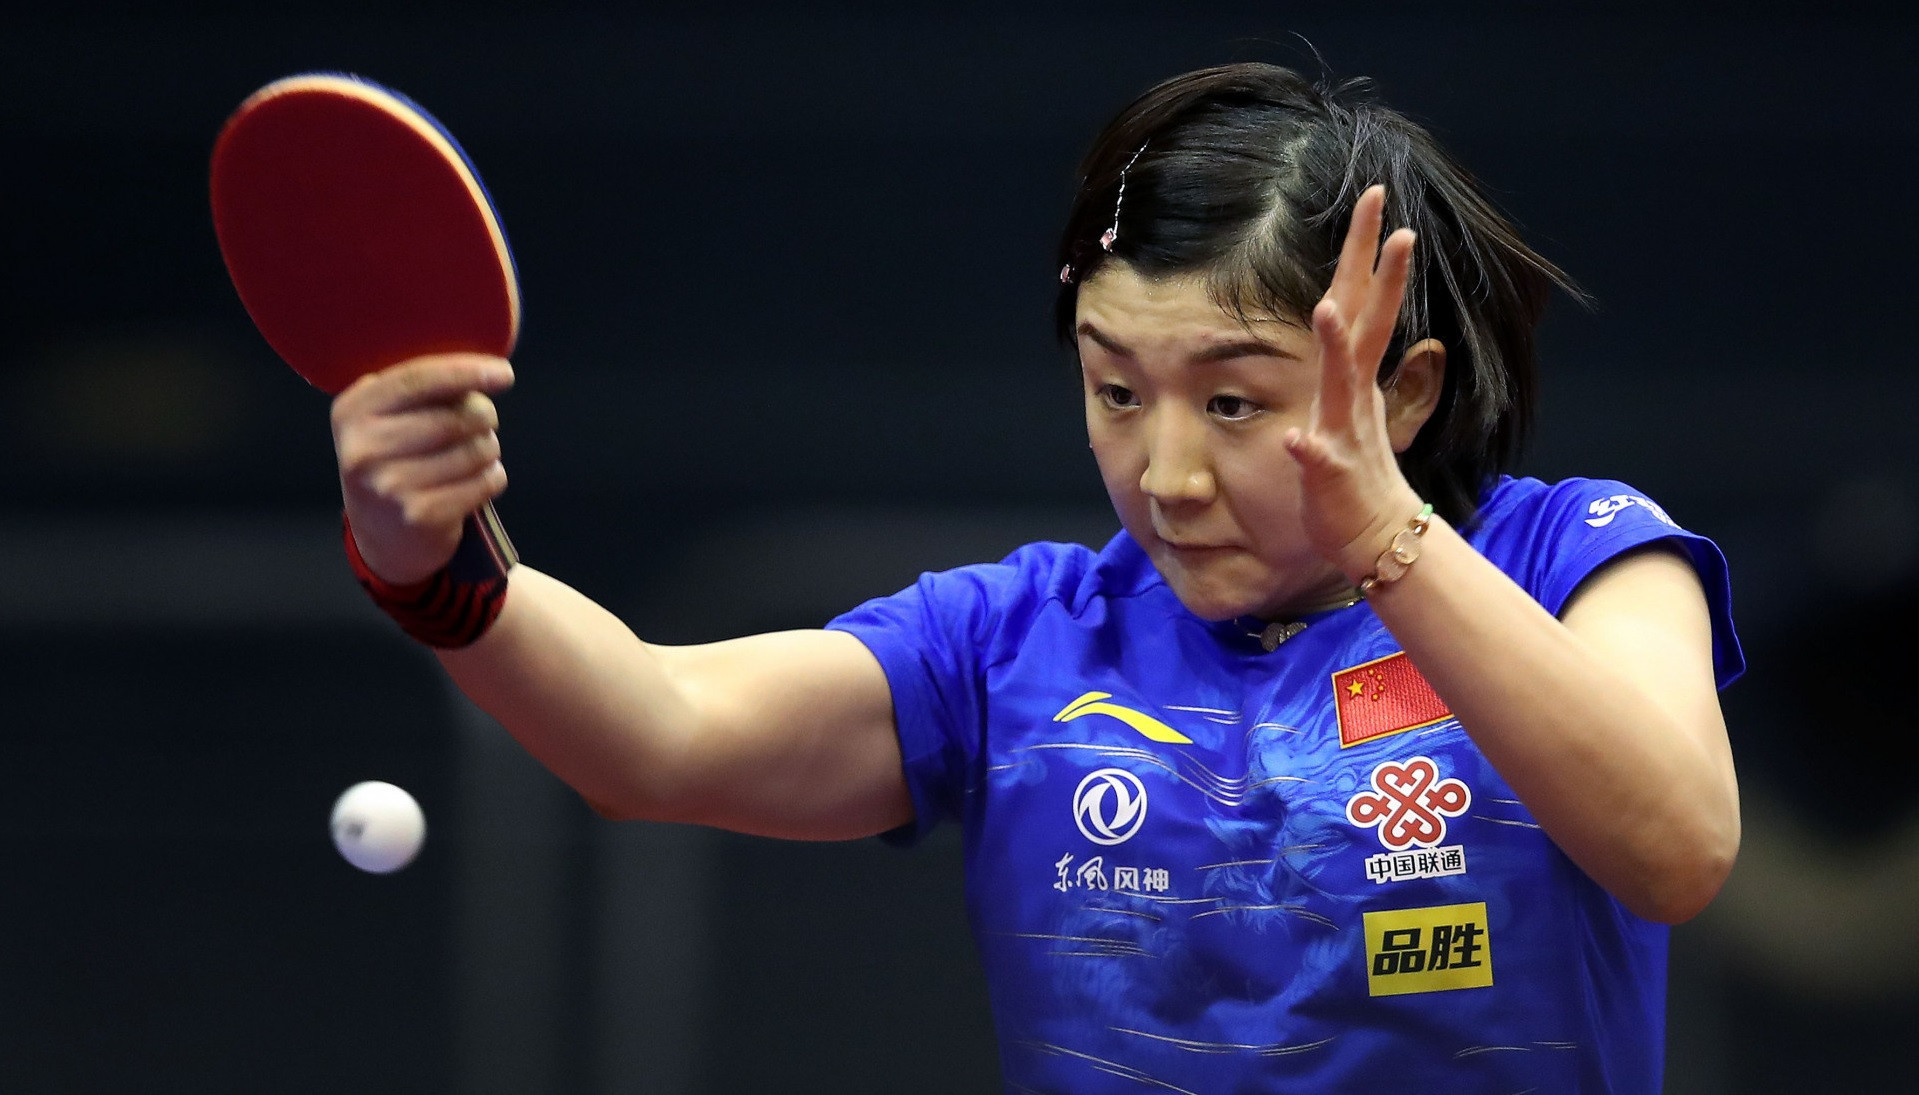 Top seed and world number one Chen Meng came from a game down to reach the semi-finals of the ITTF German Open - ©Getty Images